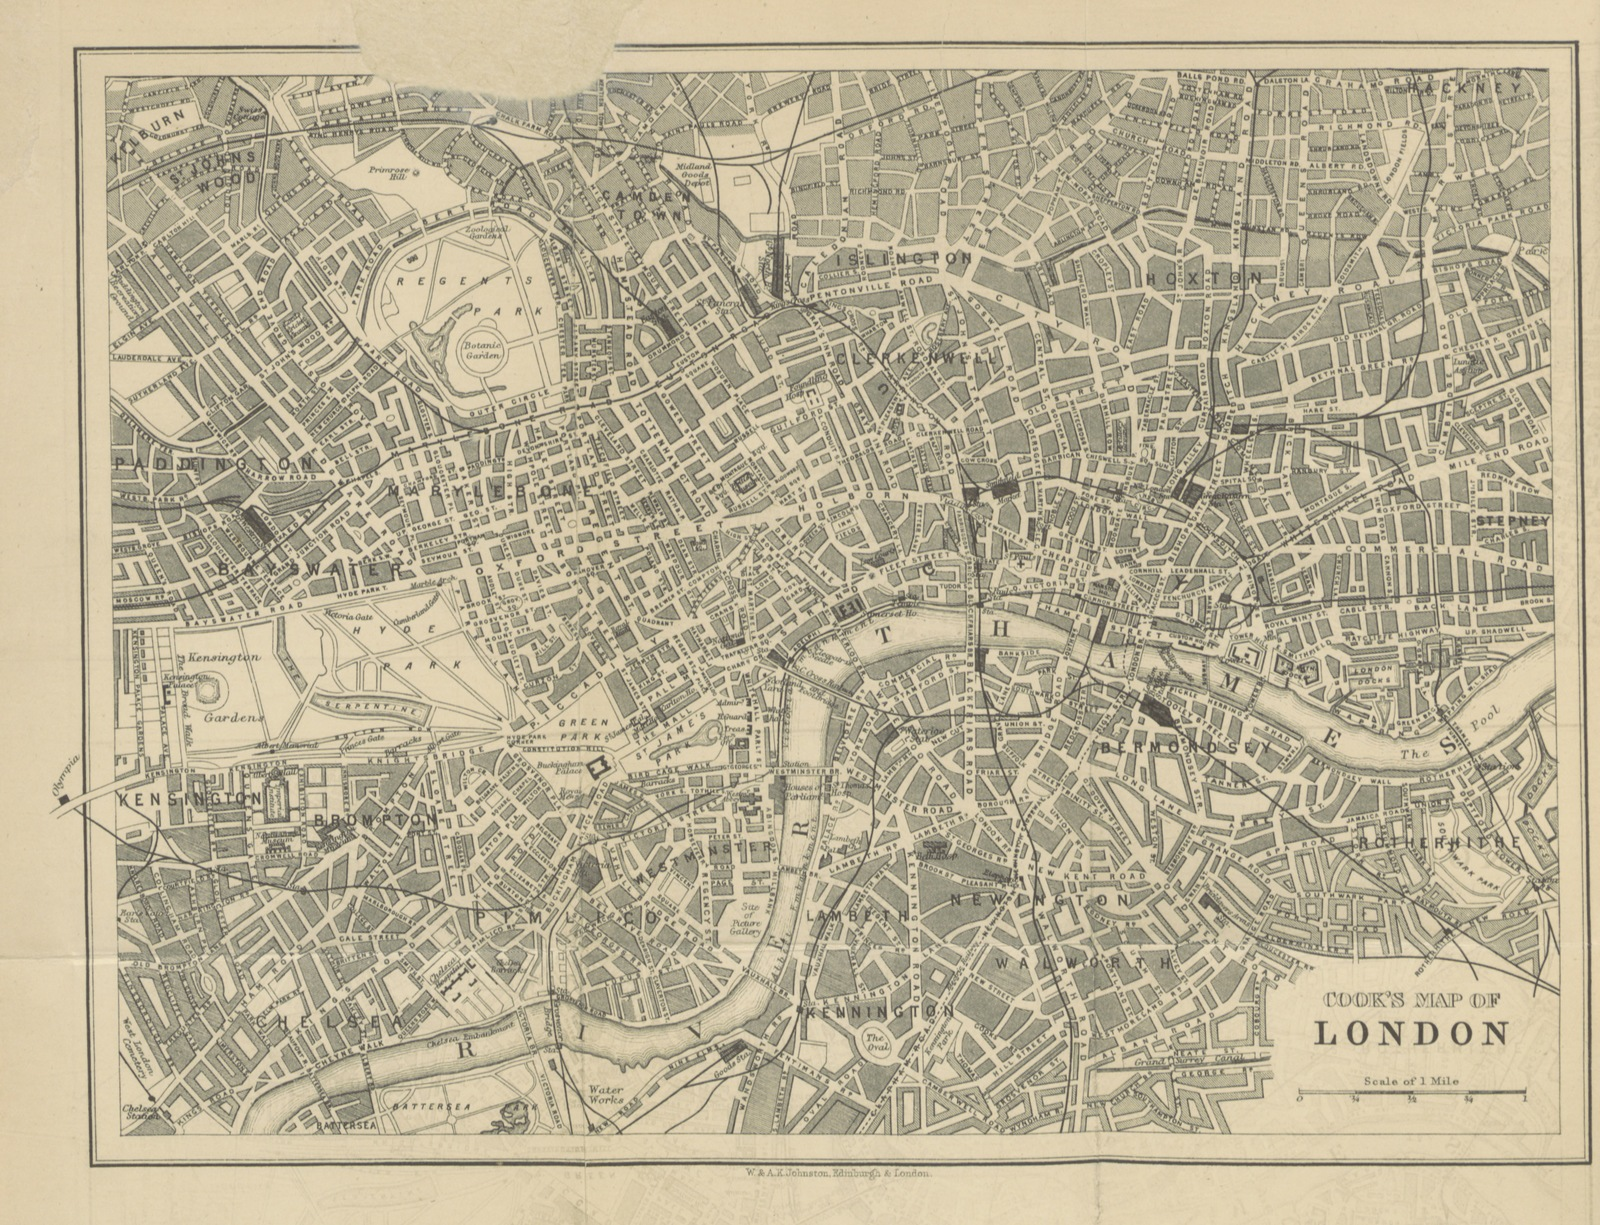 London 1600 Map.Map From Cook S Handbook For London With Two Maps Picryl